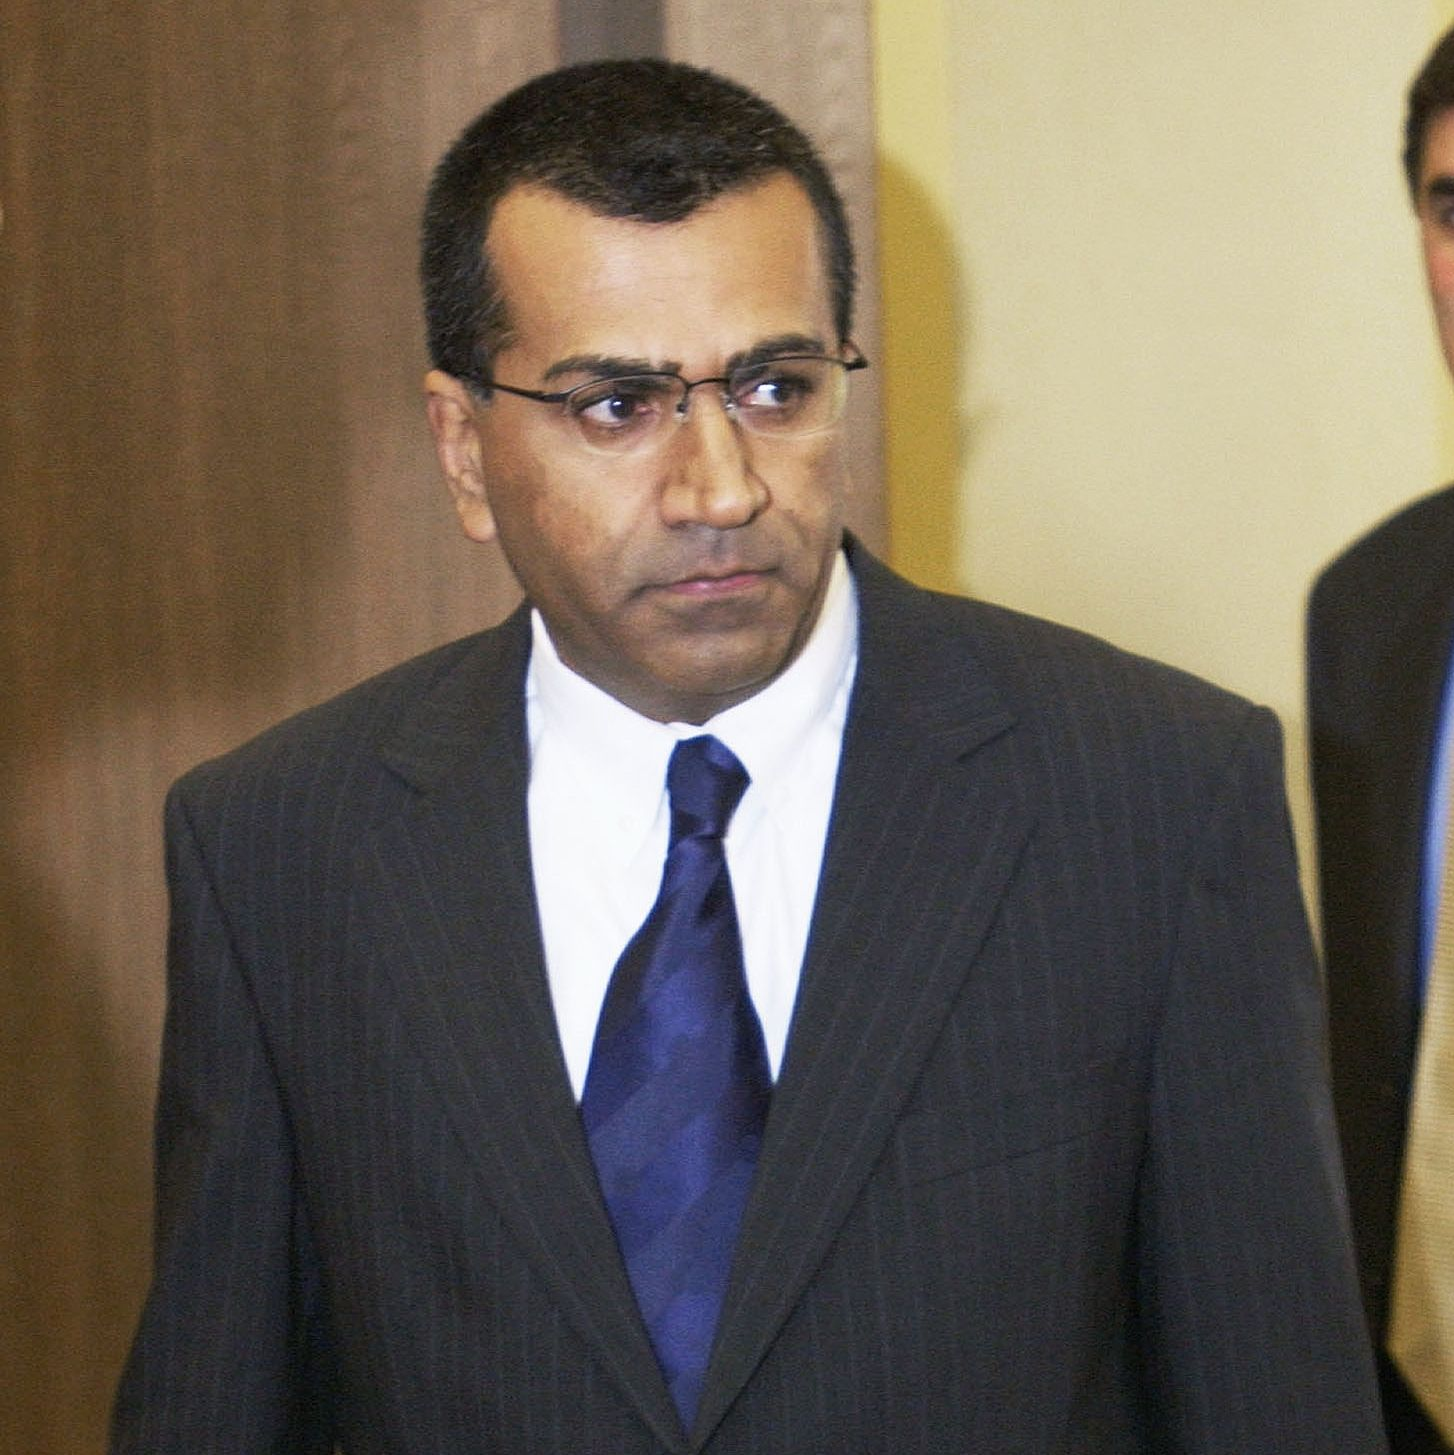 Journalist Martin Bashir was called to court to talk about his interview with Jackson.